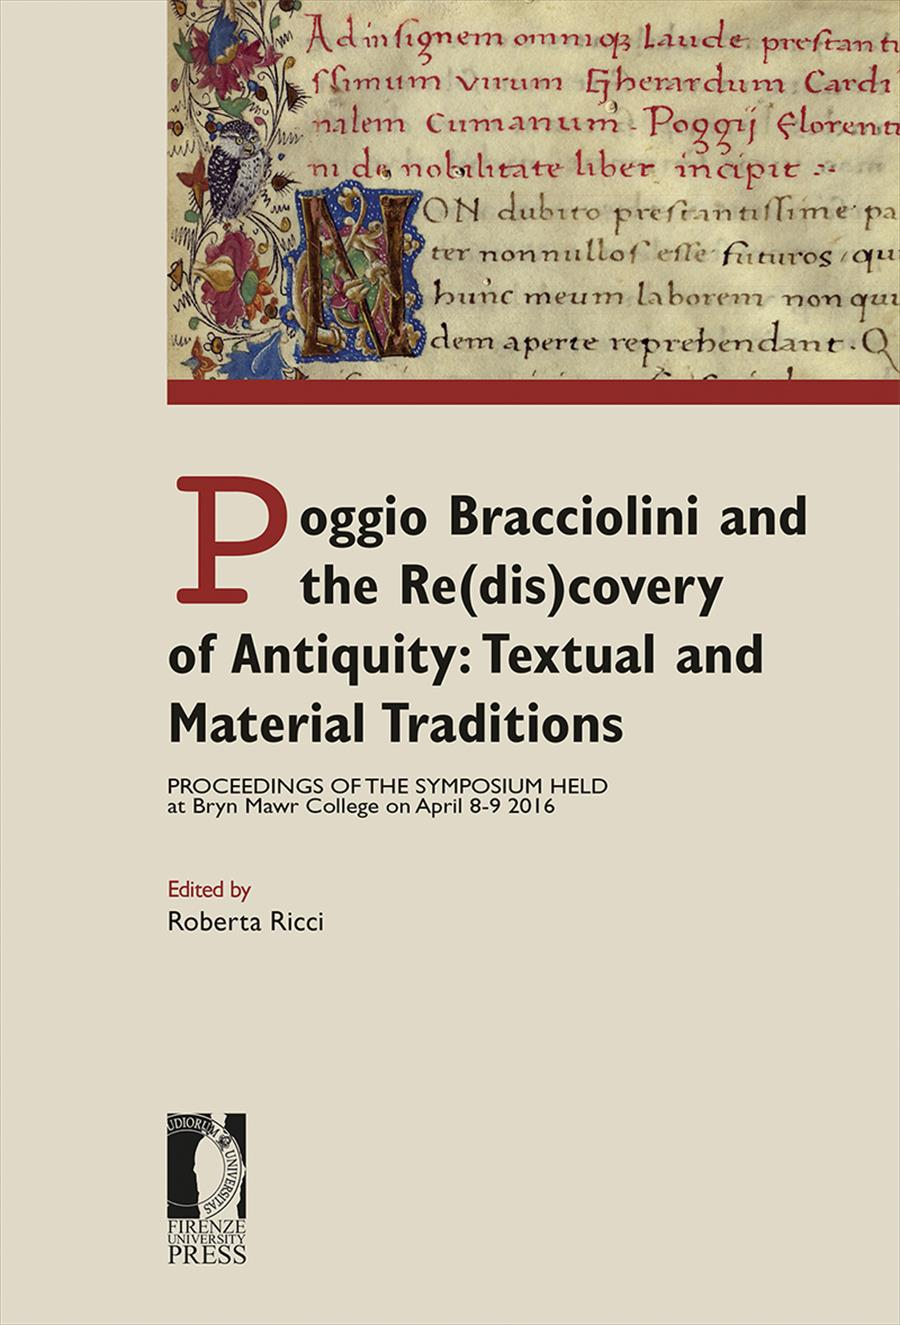 Poggio Bracciolini and the Re(dis)covery of Antiquity: Textual and Material Traditions